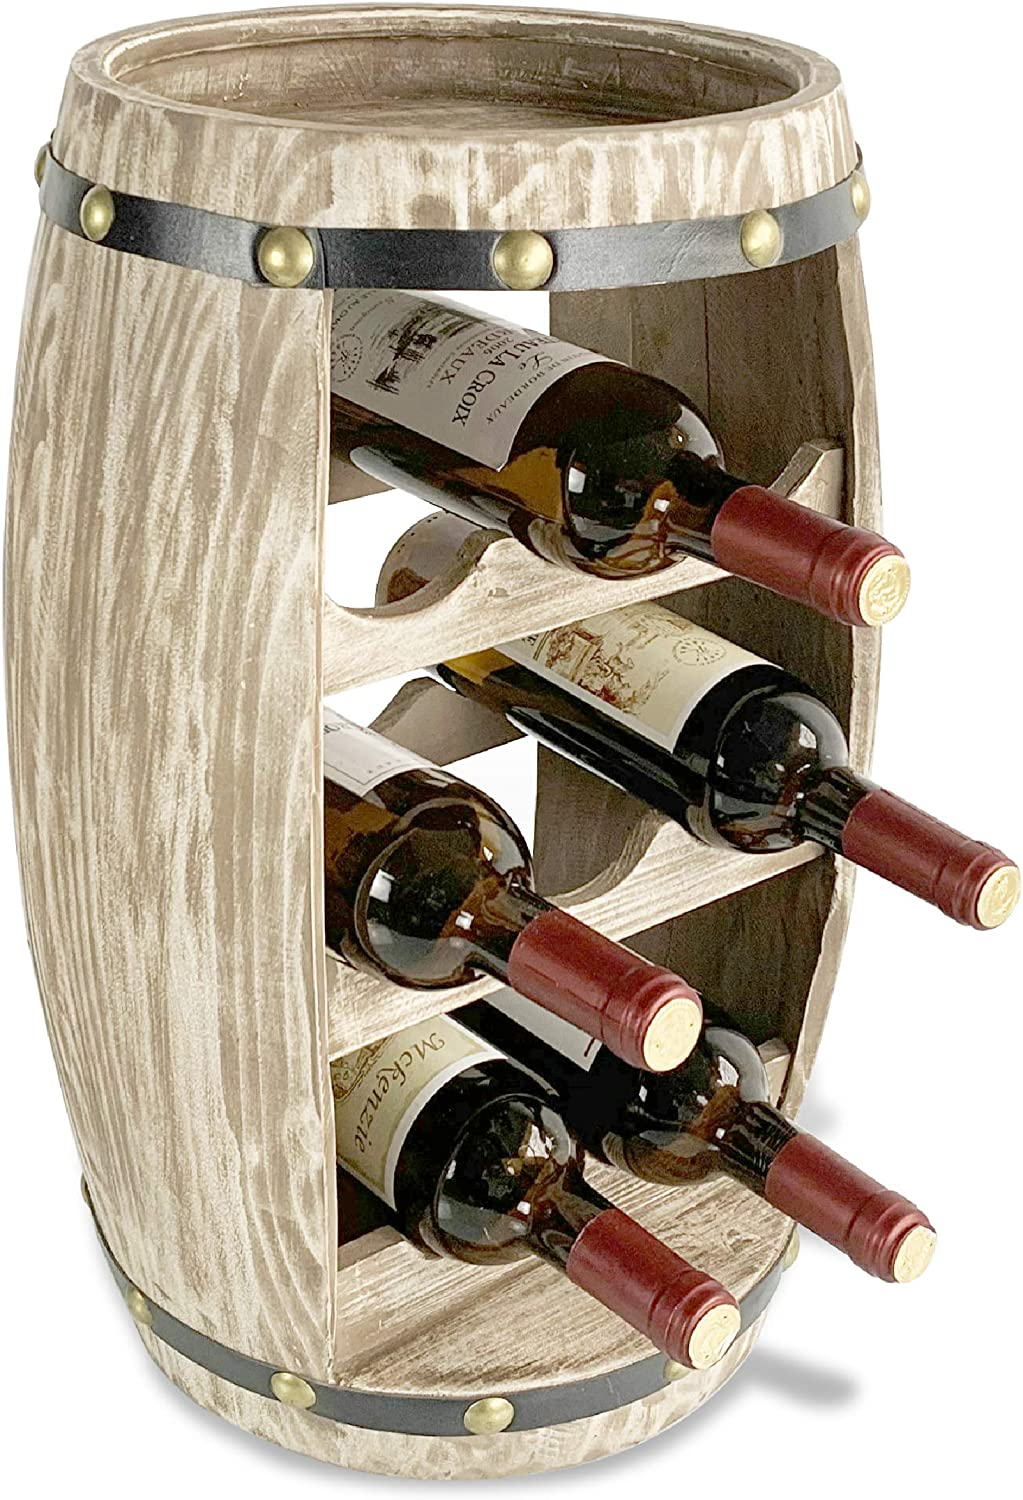 CoTa Global Modern Alexander Wine Rack - Freestanding Wooden Barrel Wine Holder for 8 Wine Bottles, Bottle Rack Floor Stand, Rustic Countertop Wine Storage Shelf Organizer for Wine Bar & Home Decor